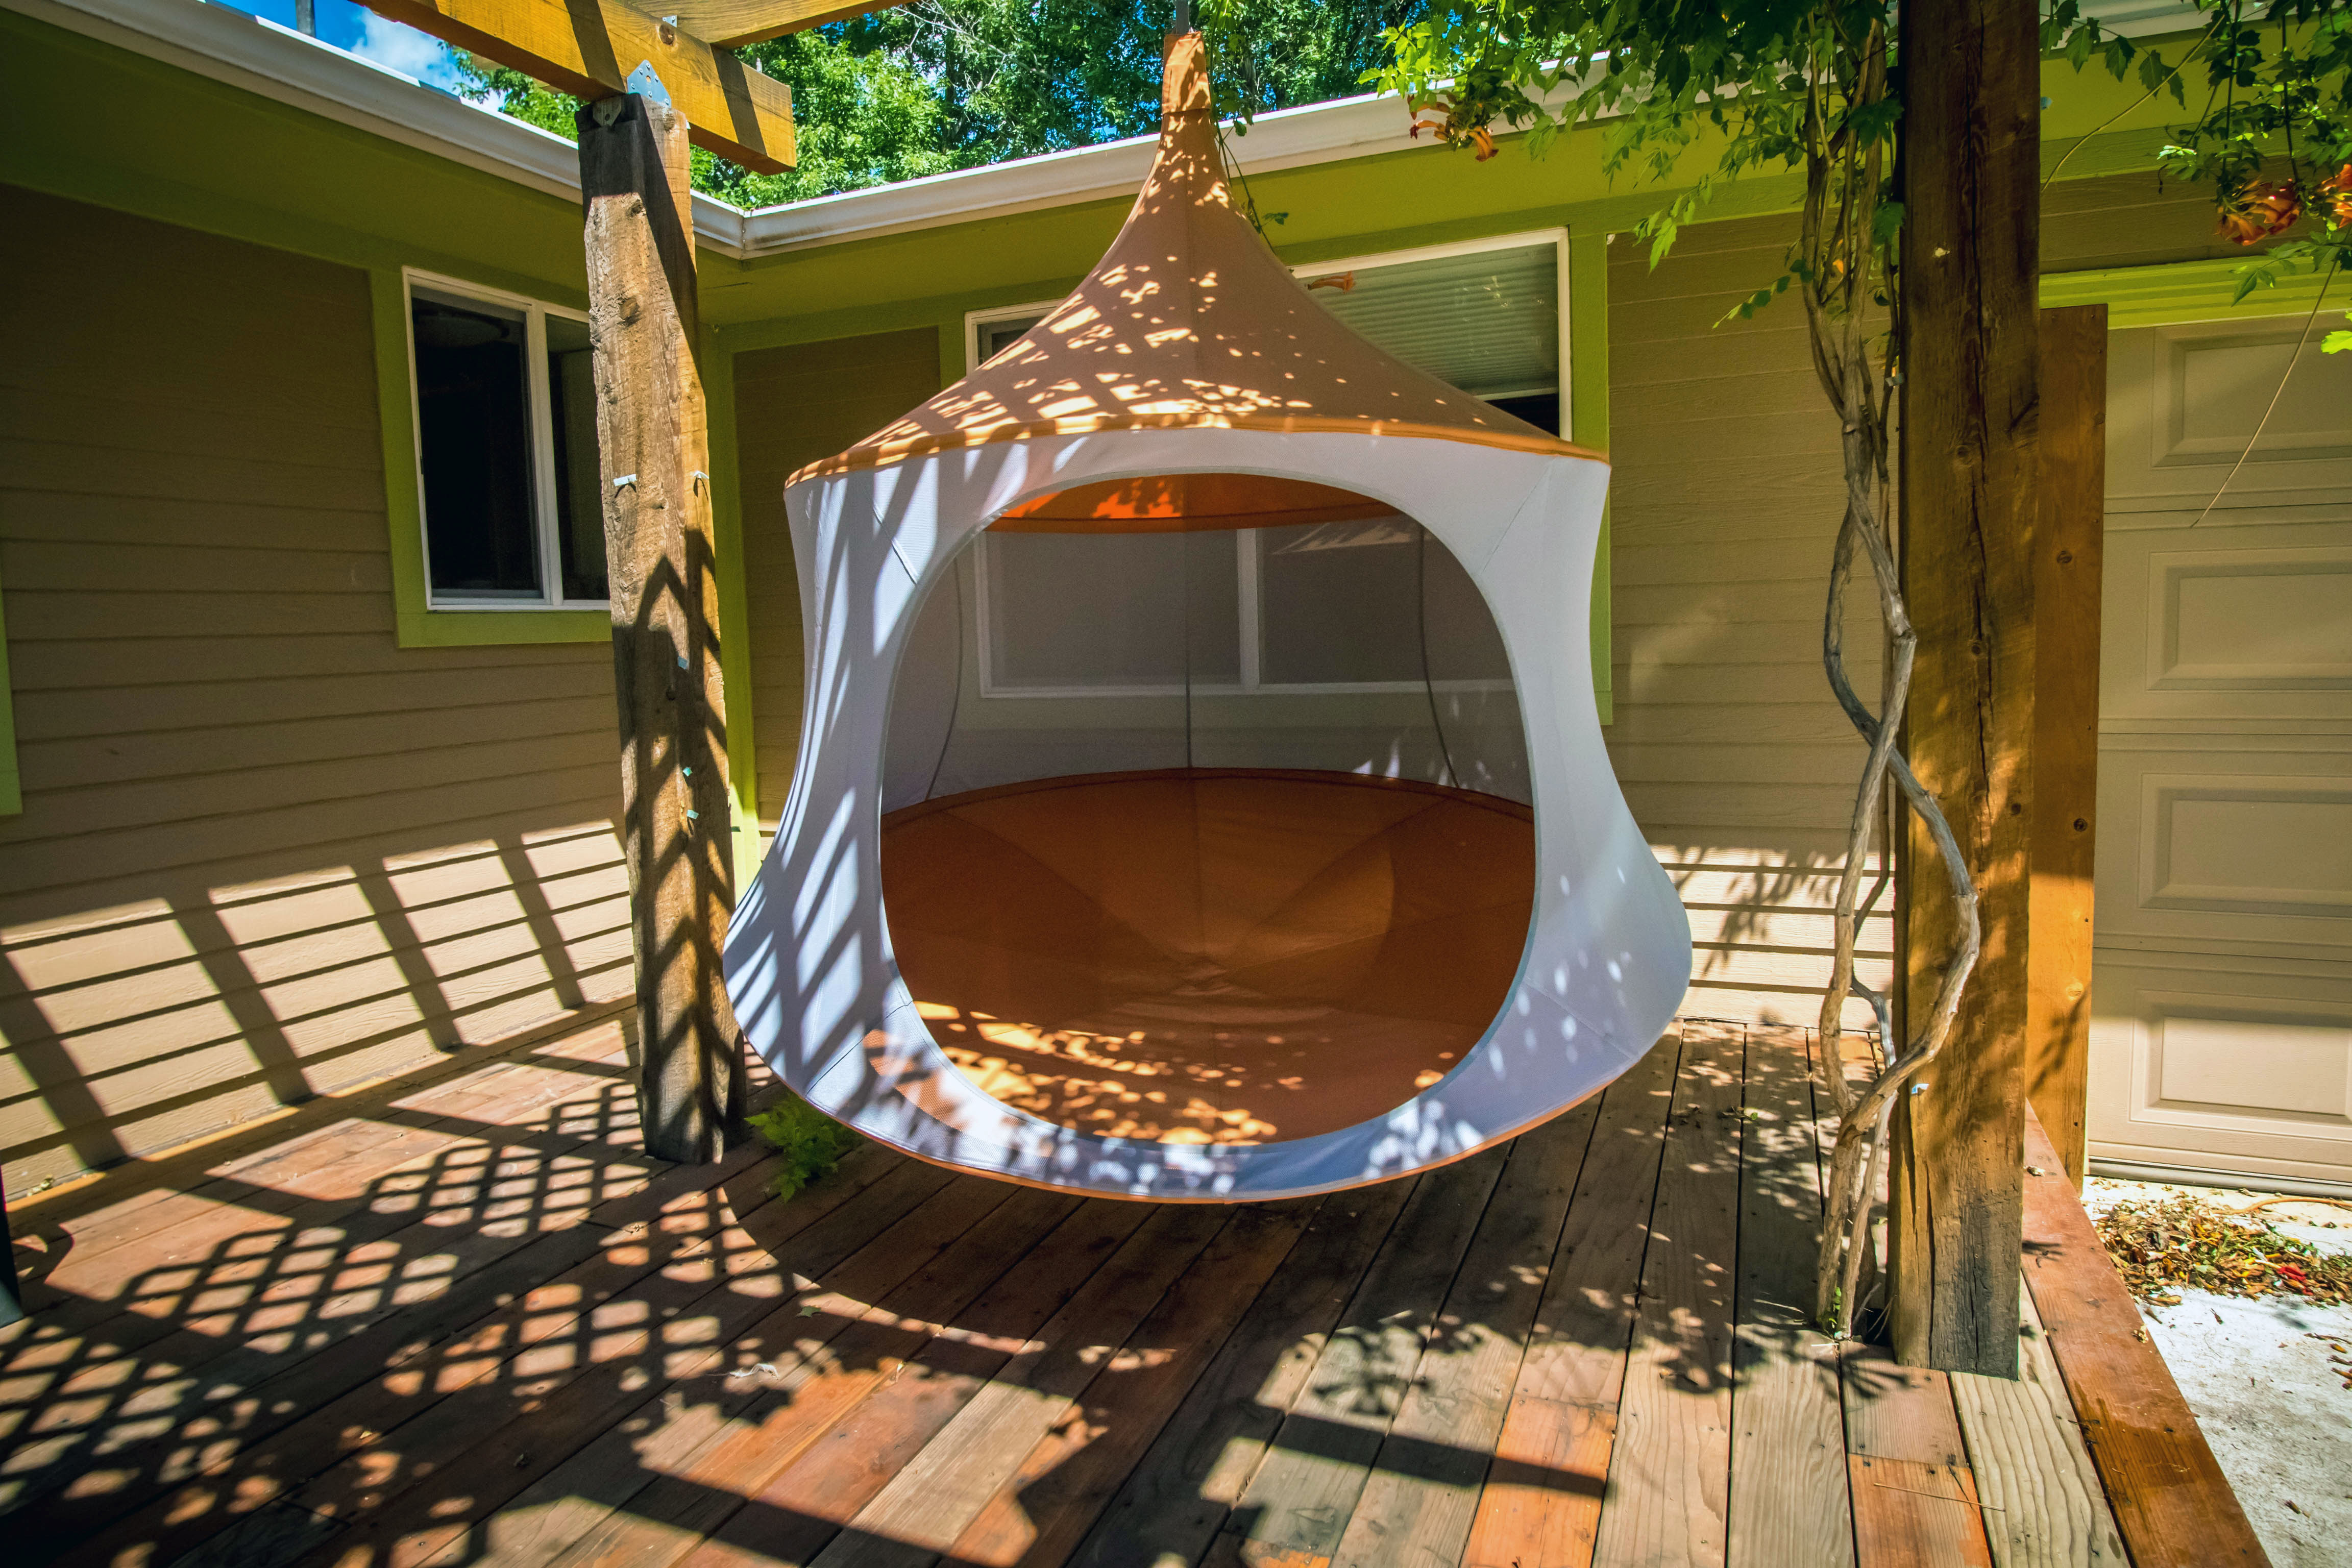 all mesh treepod offers airy new way to hang